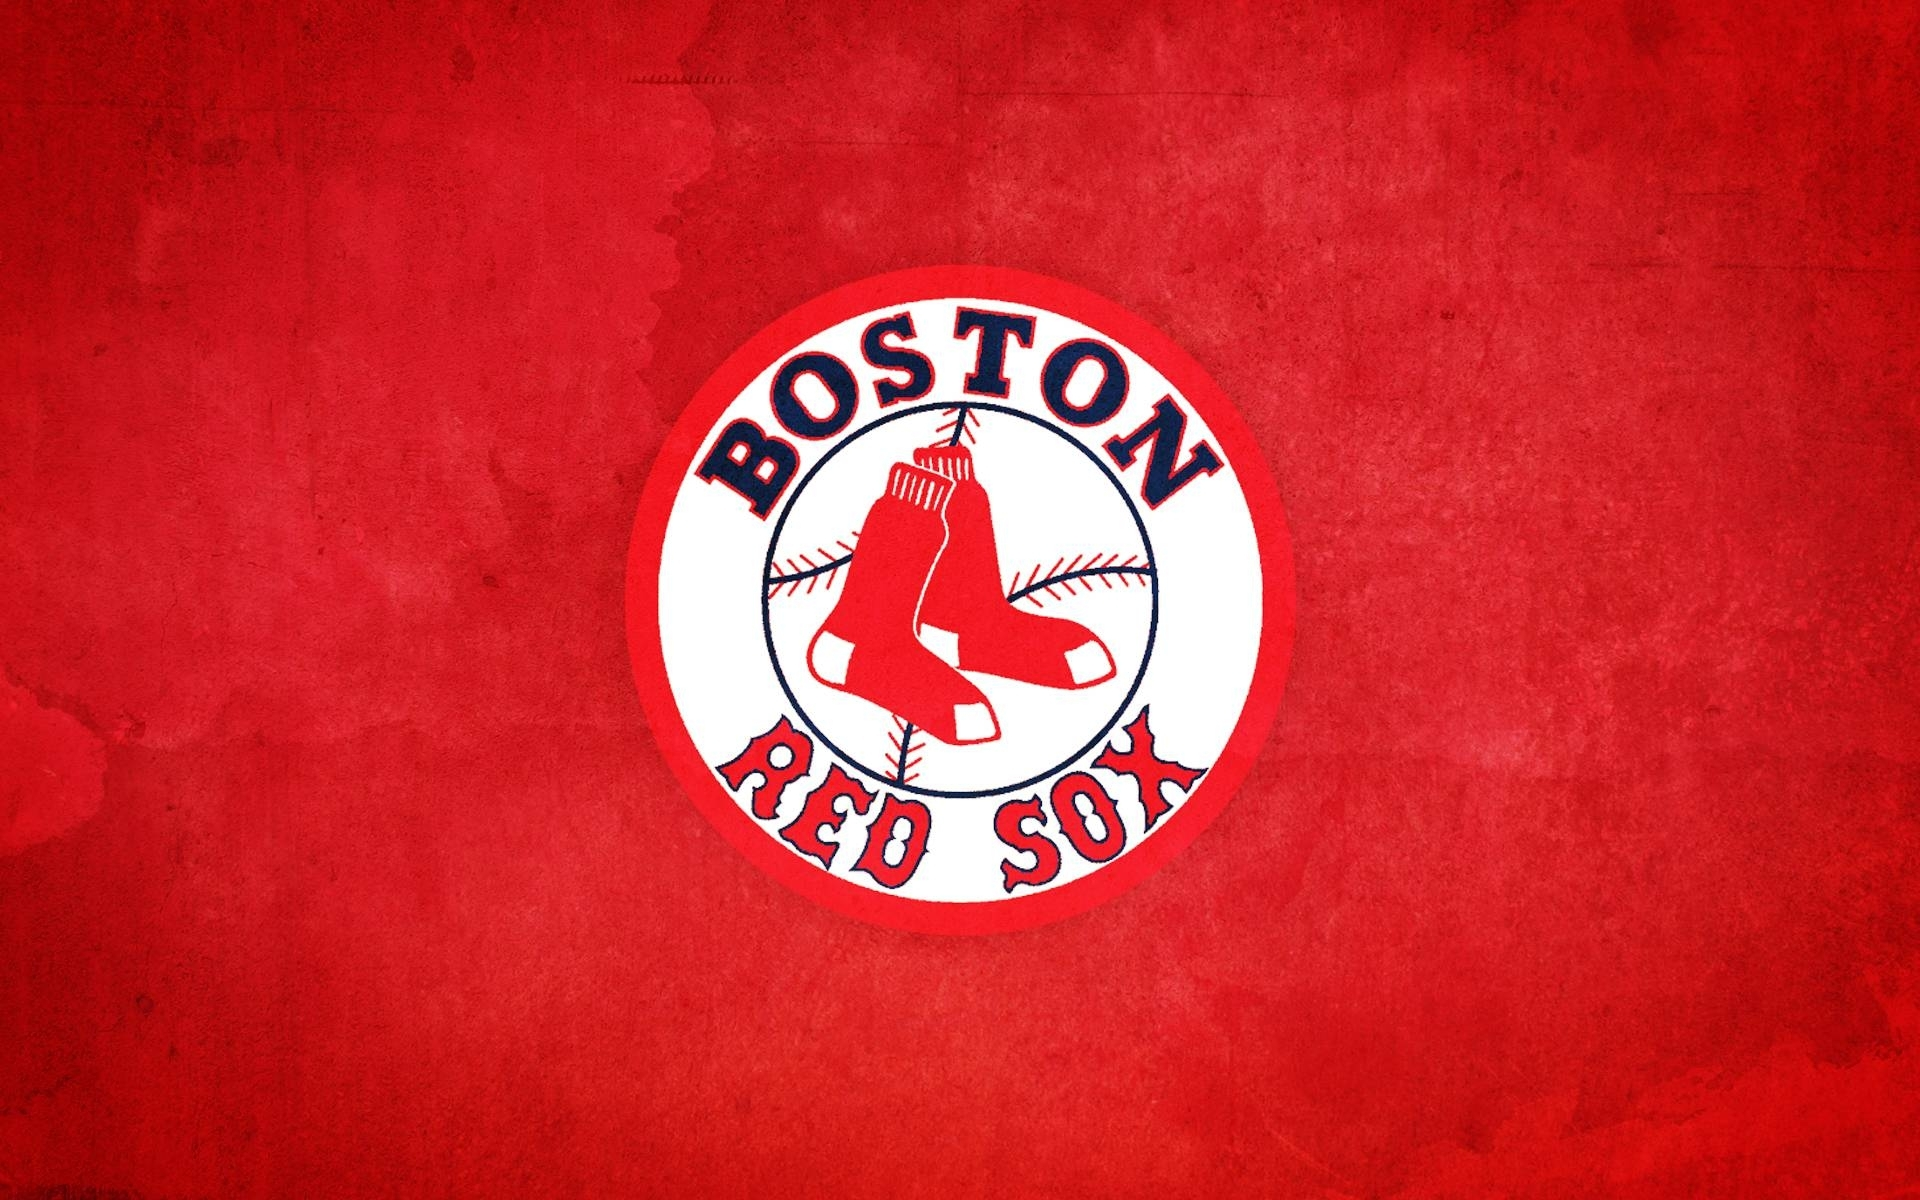 10 Top Boston Red Sox Backgrounds FULL HD 1080p For PC Background